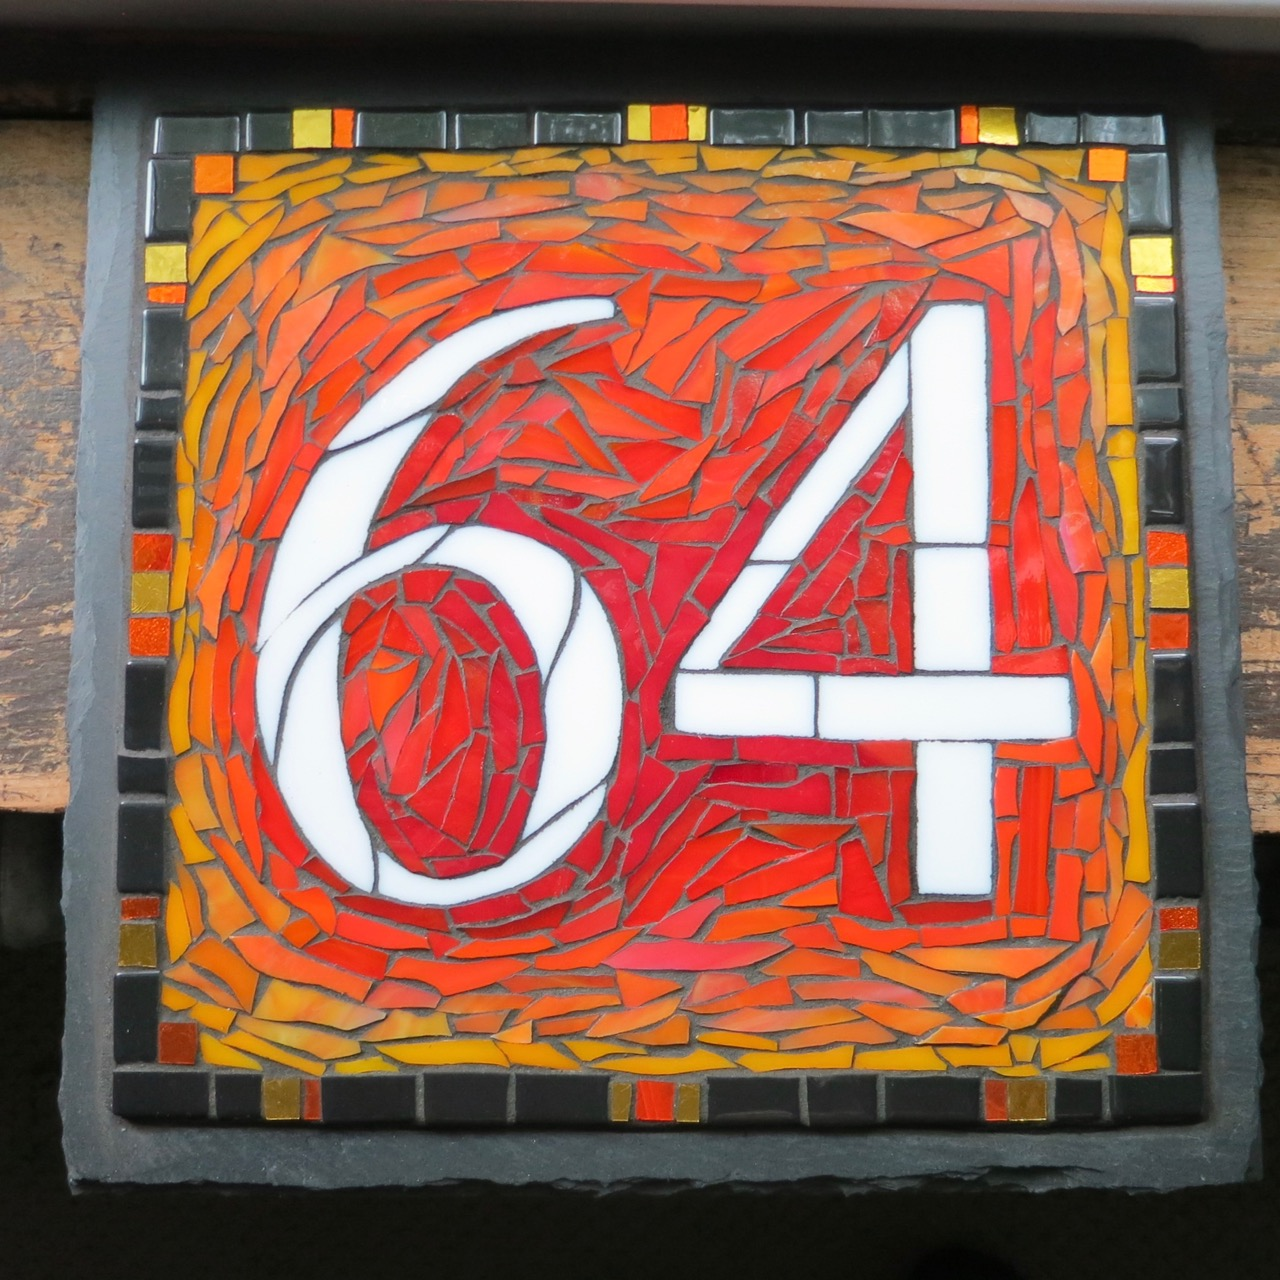 Square 12x12 inch 2 Digit Mosaic House Number on Slate